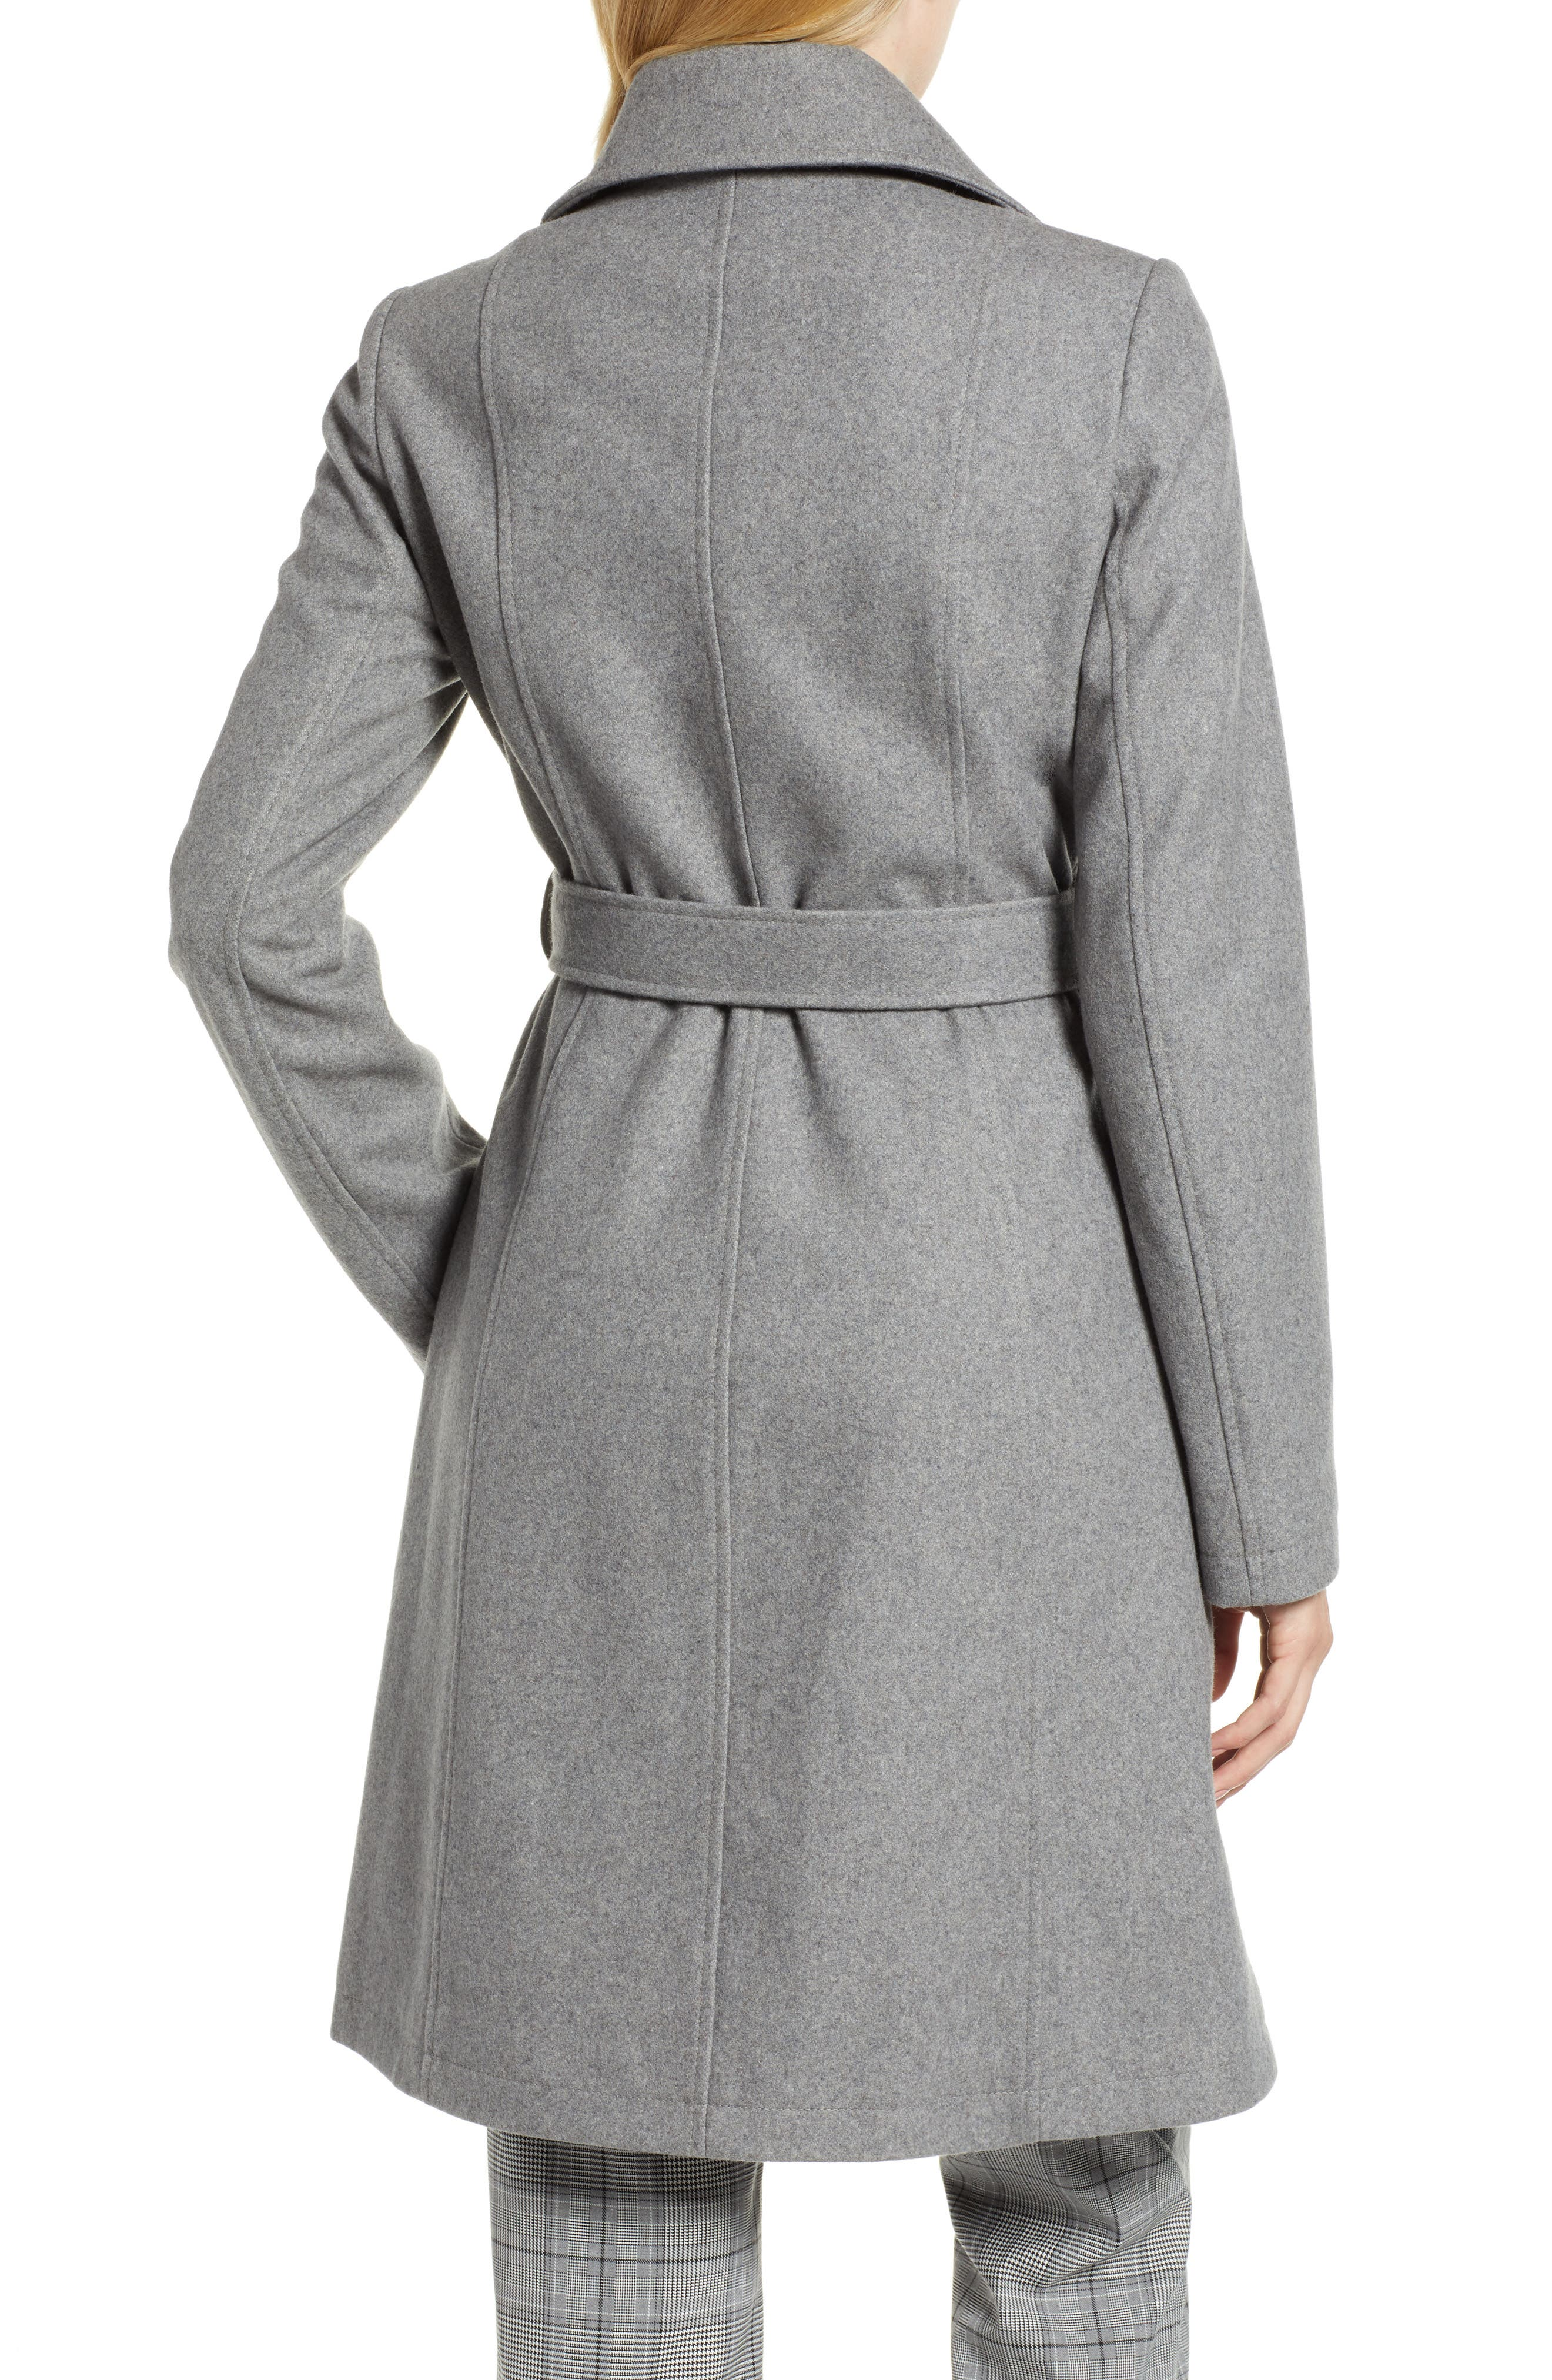 Belted Wool Blend Coat,                             Alternate thumbnail 2, color,                             GREY